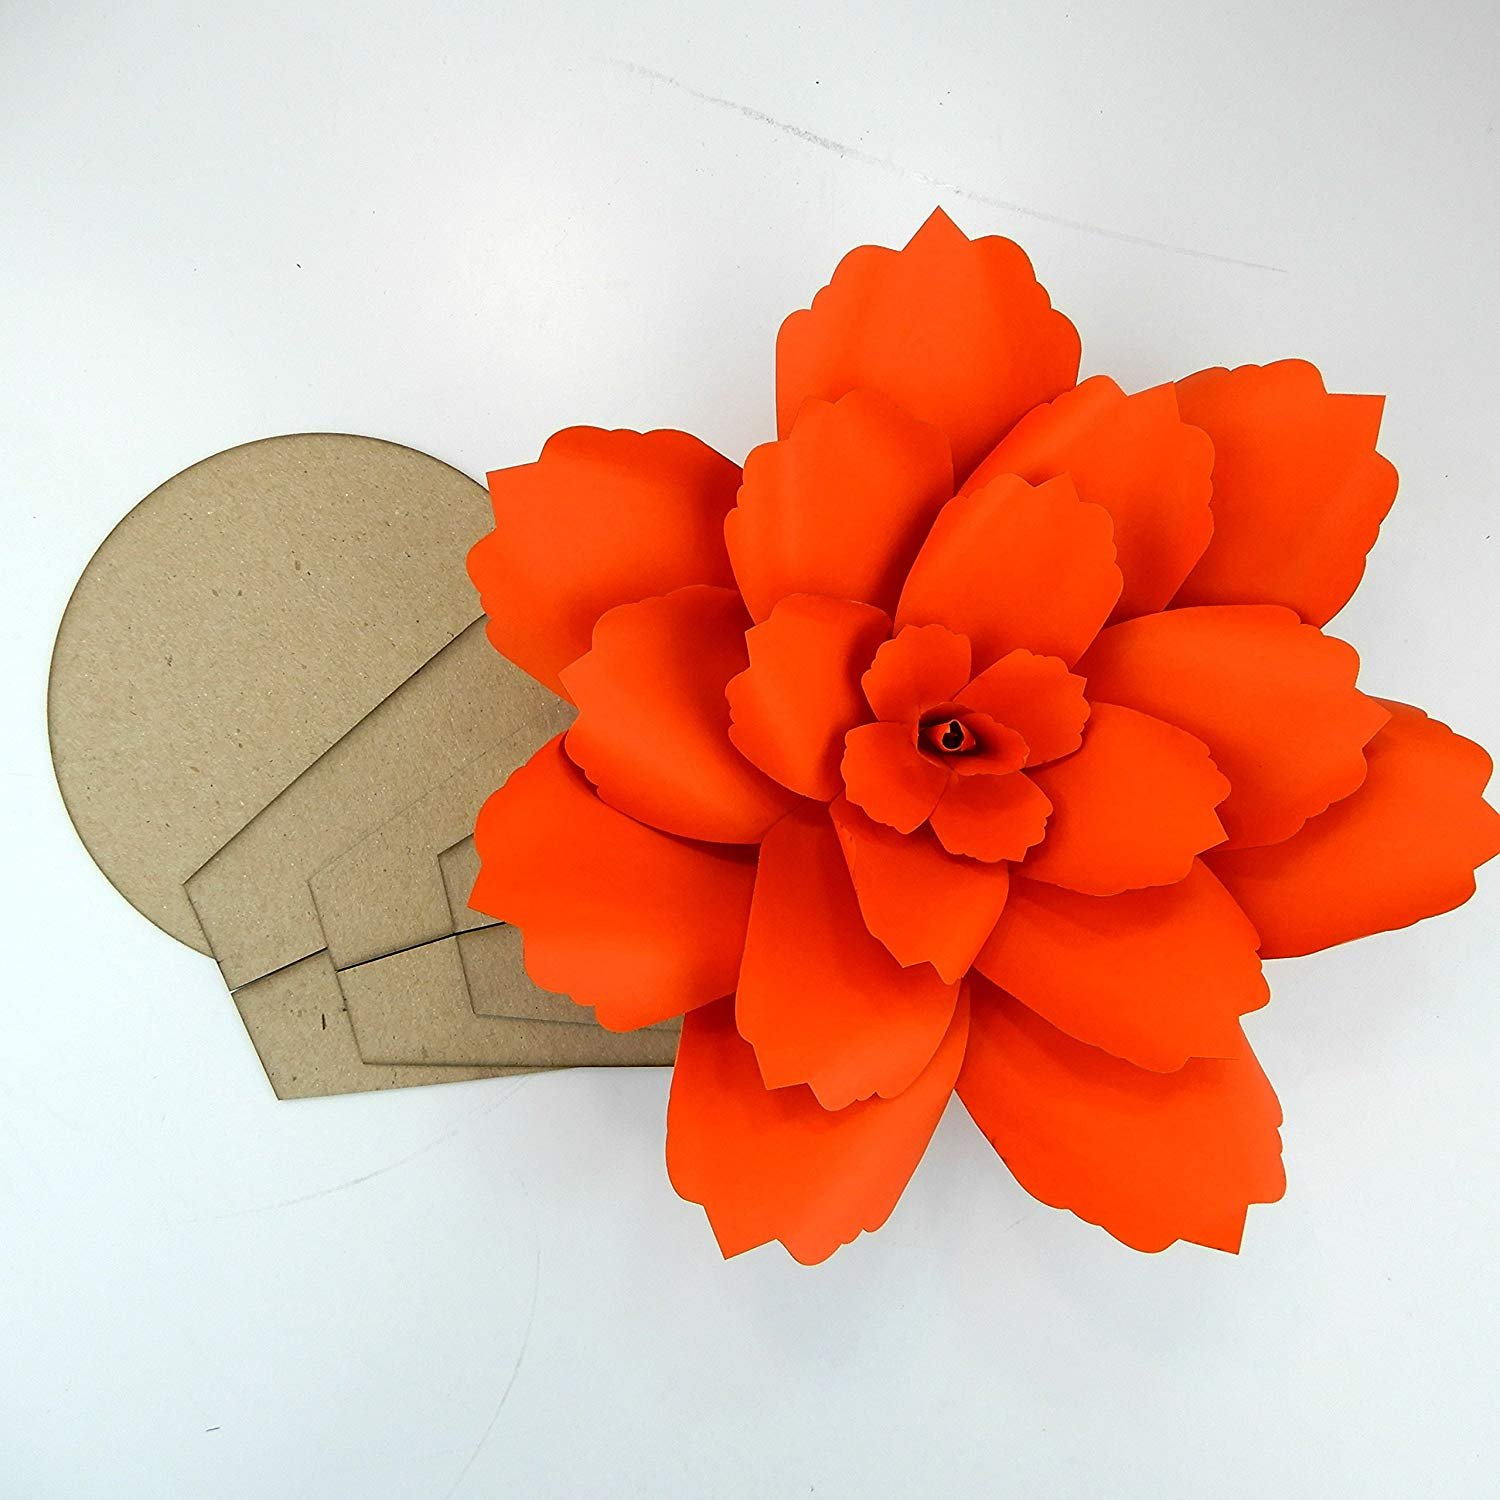 Paper Flower Template Kit Pattern DIY Make Your own Flower Backdrop Photo Booth Flower Decoration Card Stock Blossom